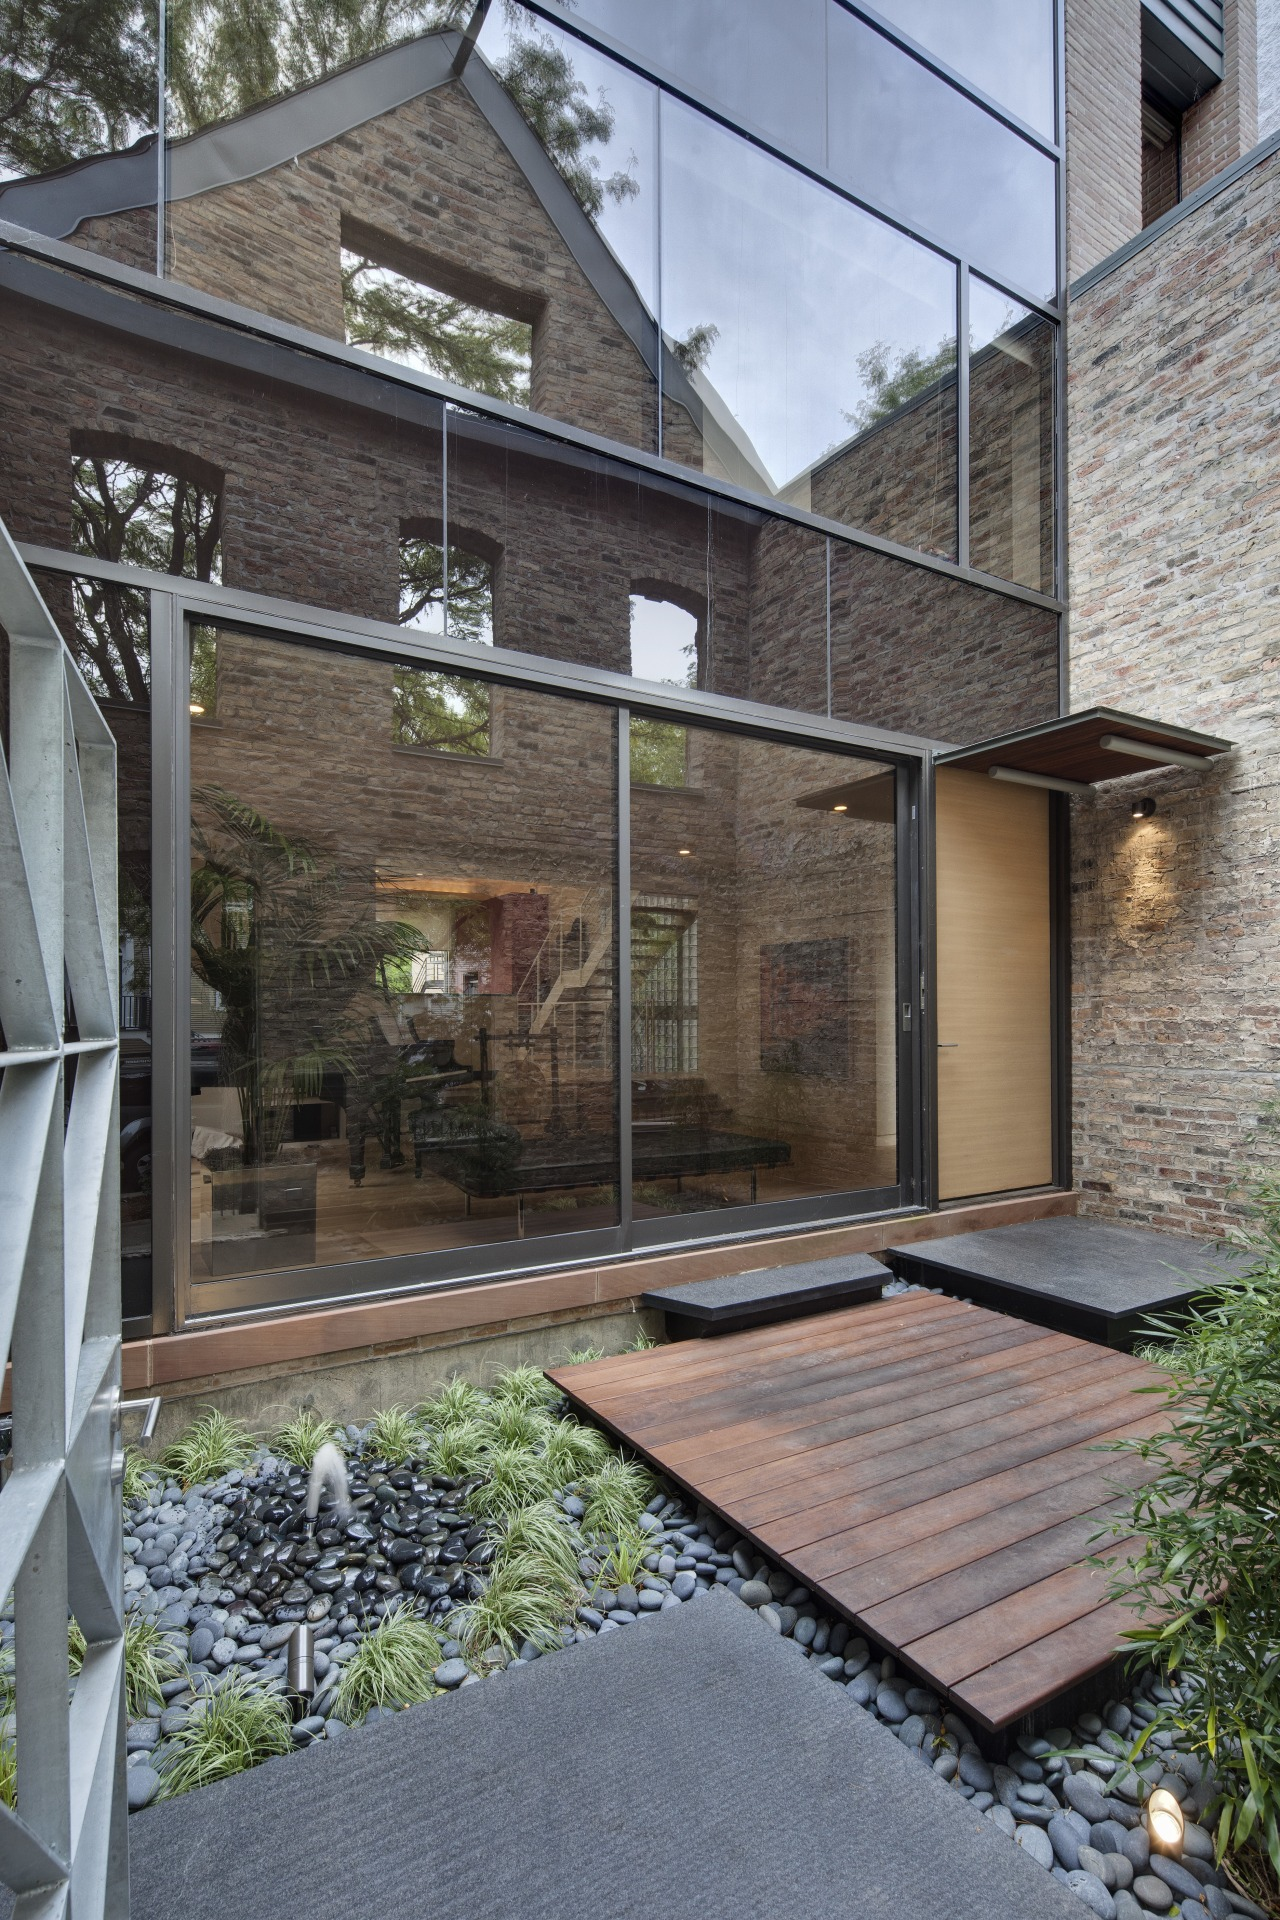 View of a renovated three-story home, built to architecture, courtyard, facade, home, house, outdoor structure, real estate, residential area, siding, gray